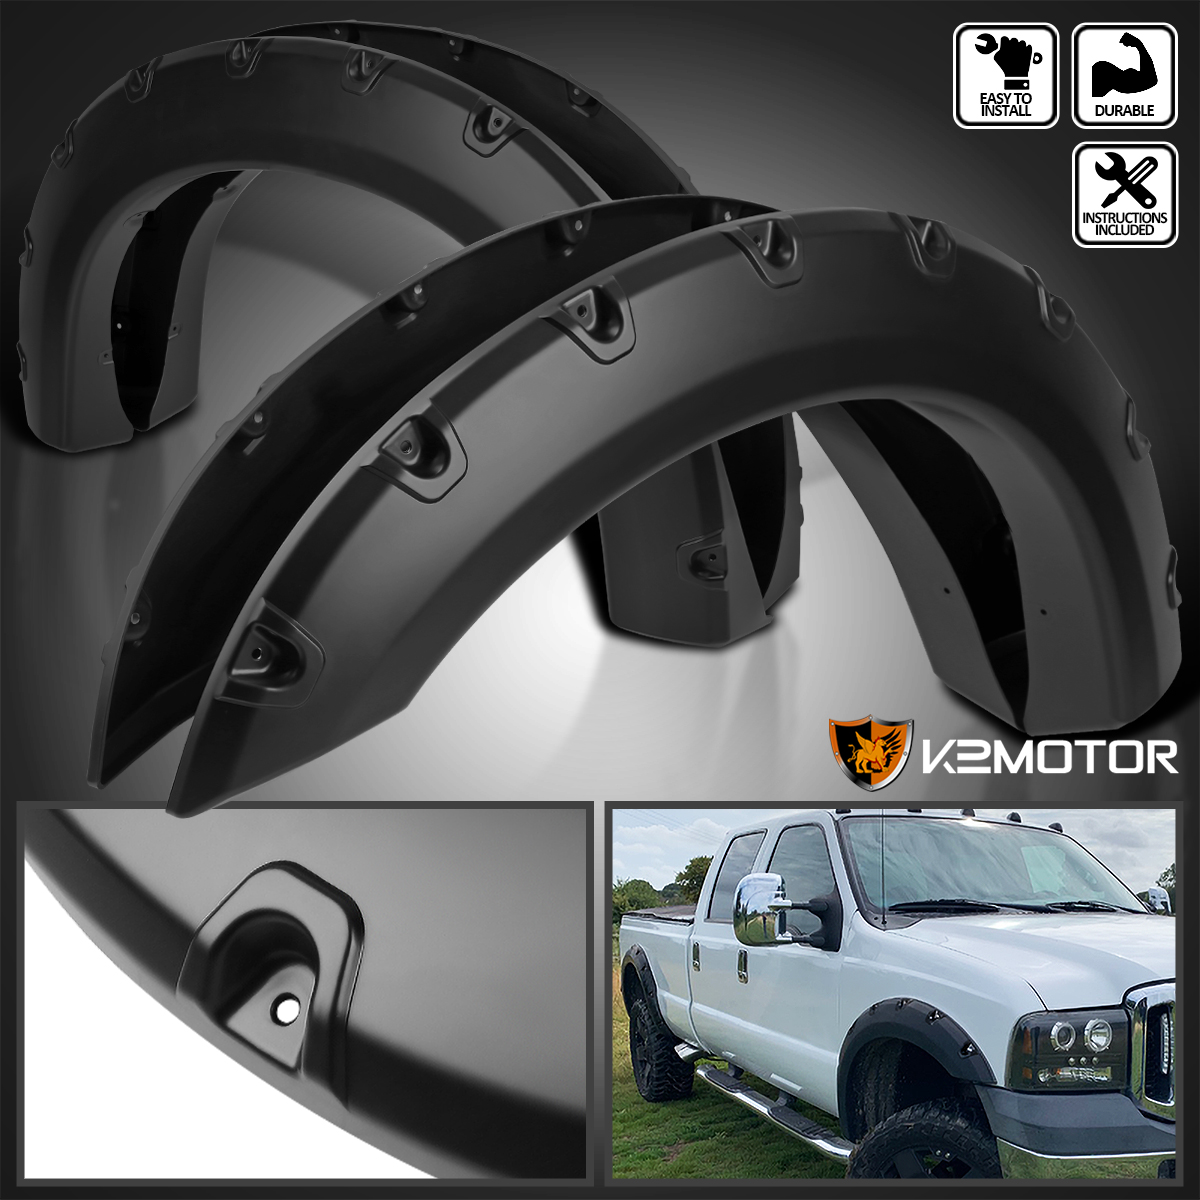 G-PLUS Wheel Fender Flares Kit for Ford F250 F350 Super Duty 2011-2016 Smooth Black Finish Front /& Rear Tire Cover Offroad Pocket Rivet Style 2012 2013 2014 2015